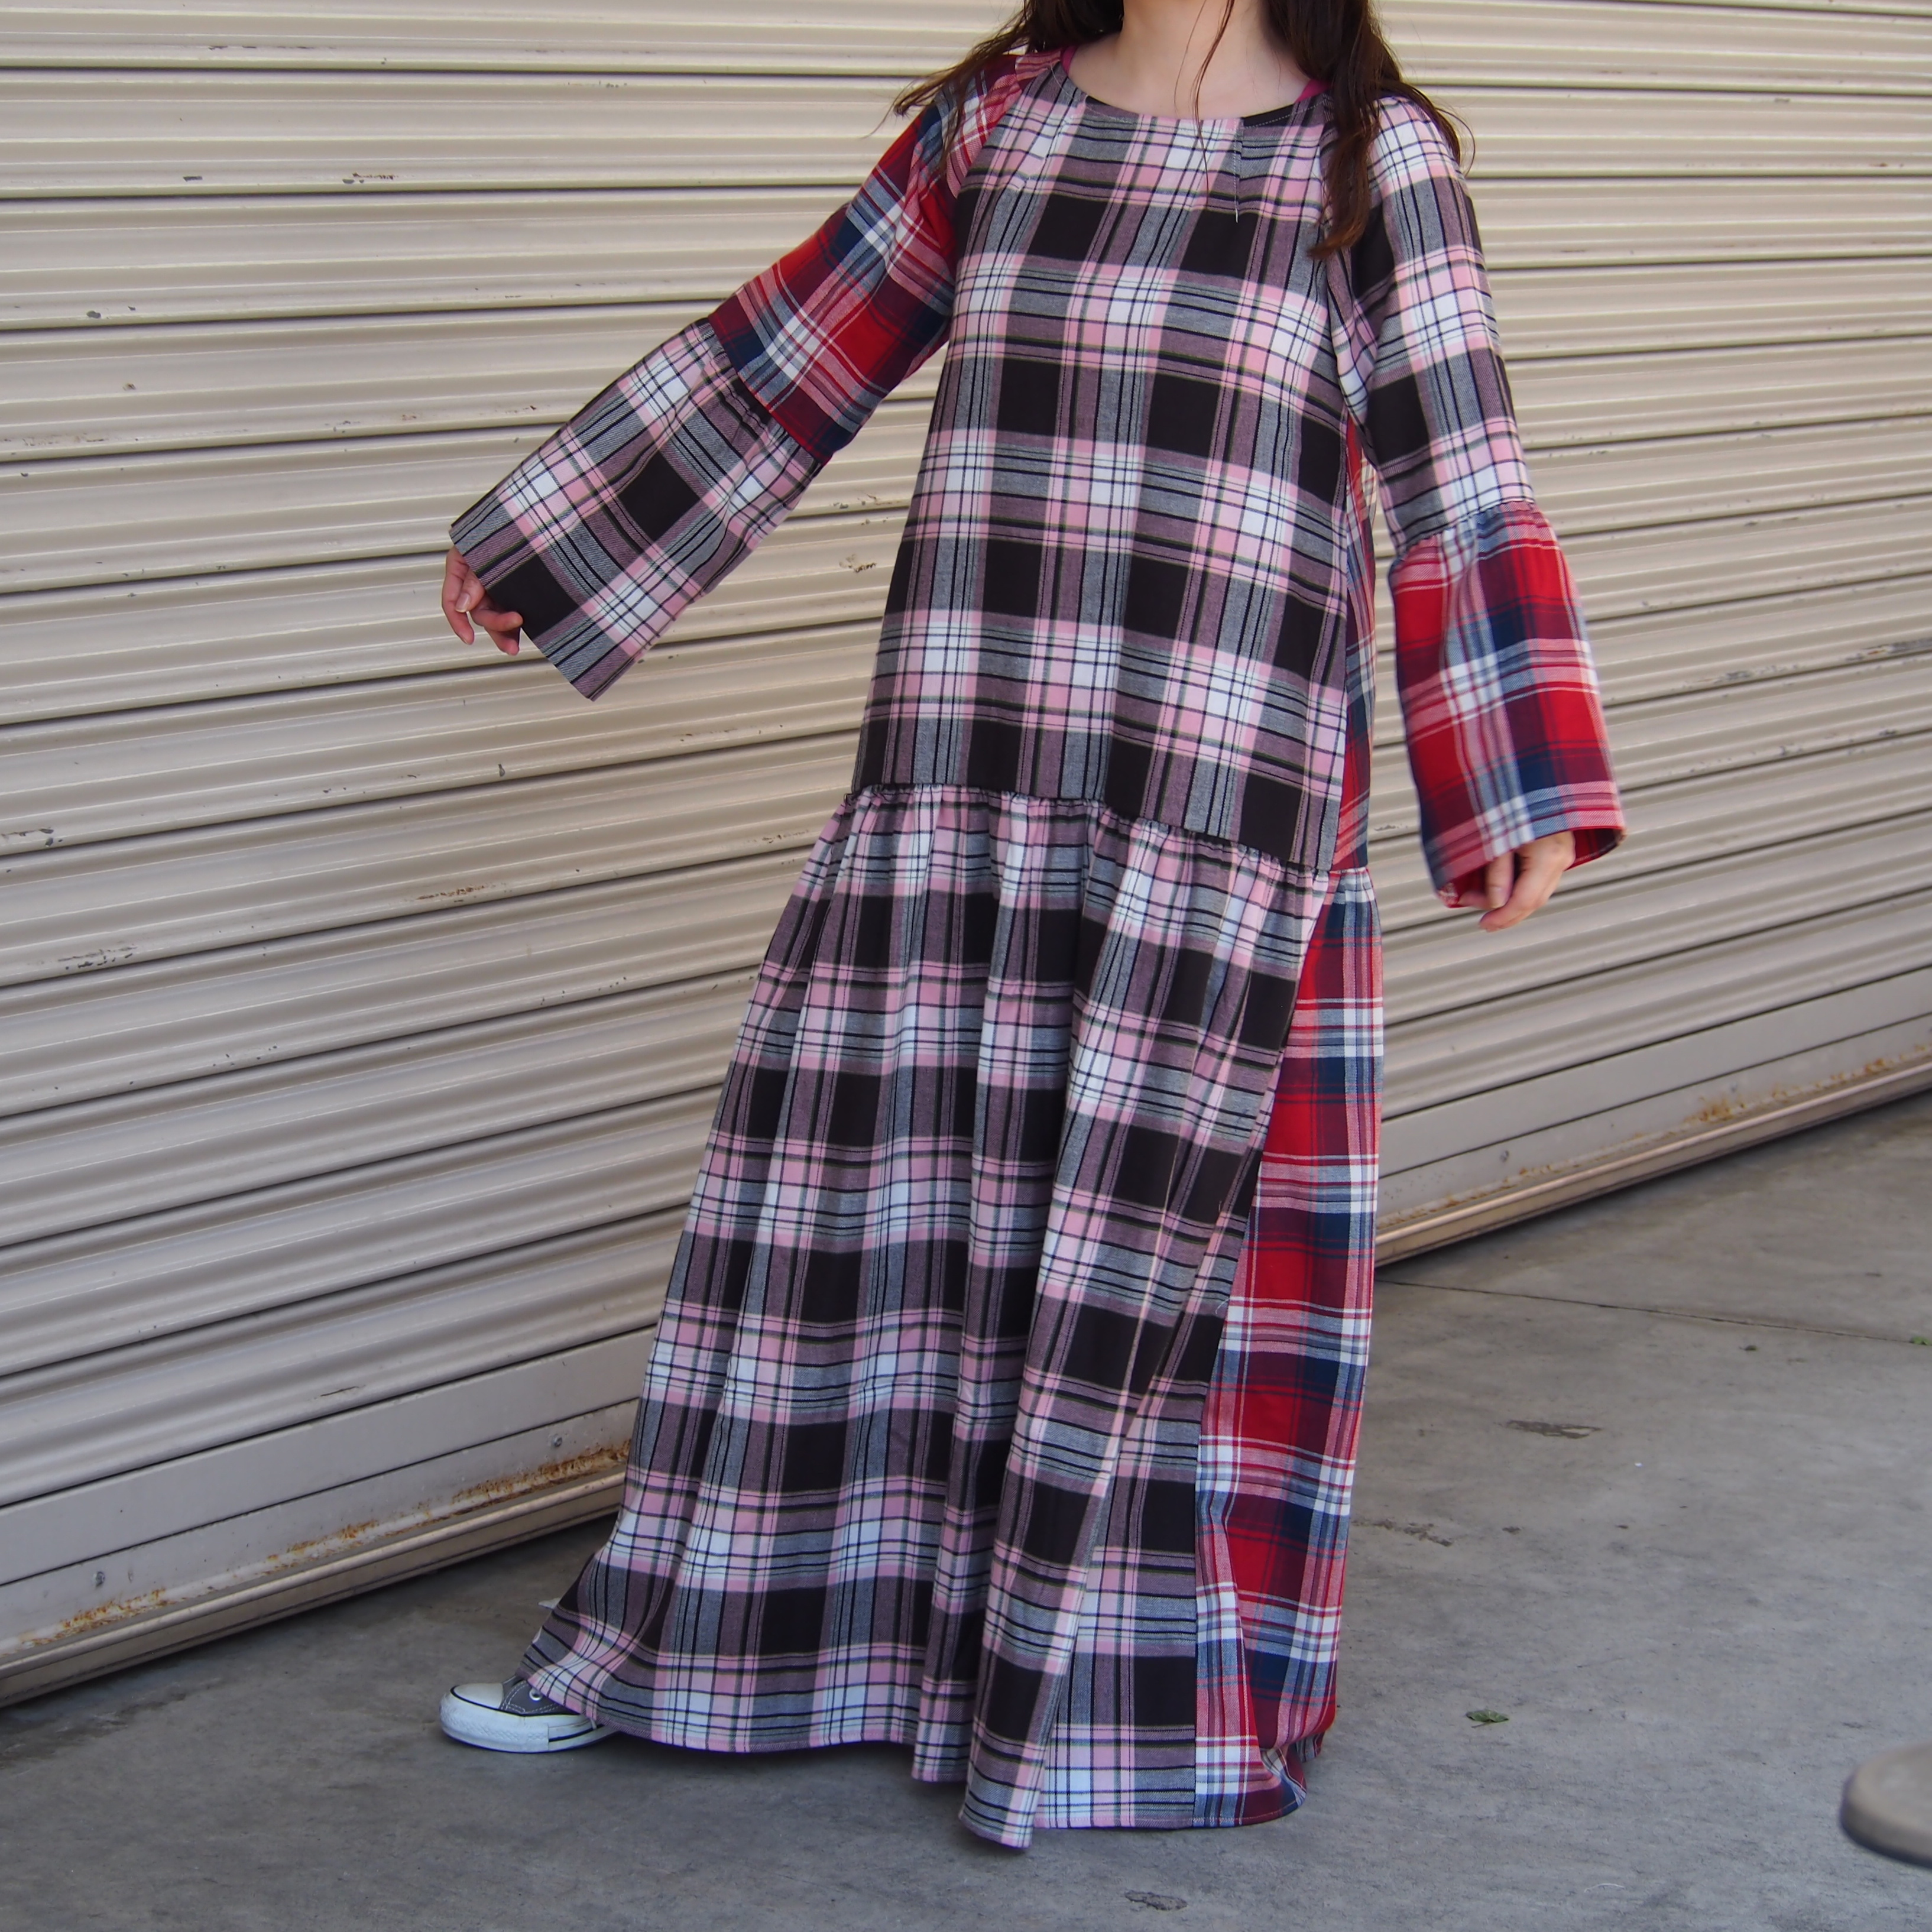 【ethical hippi】cotton check one-piece(4) / 【エシカル ヒッピ】コットン チェック ワンピース(4)